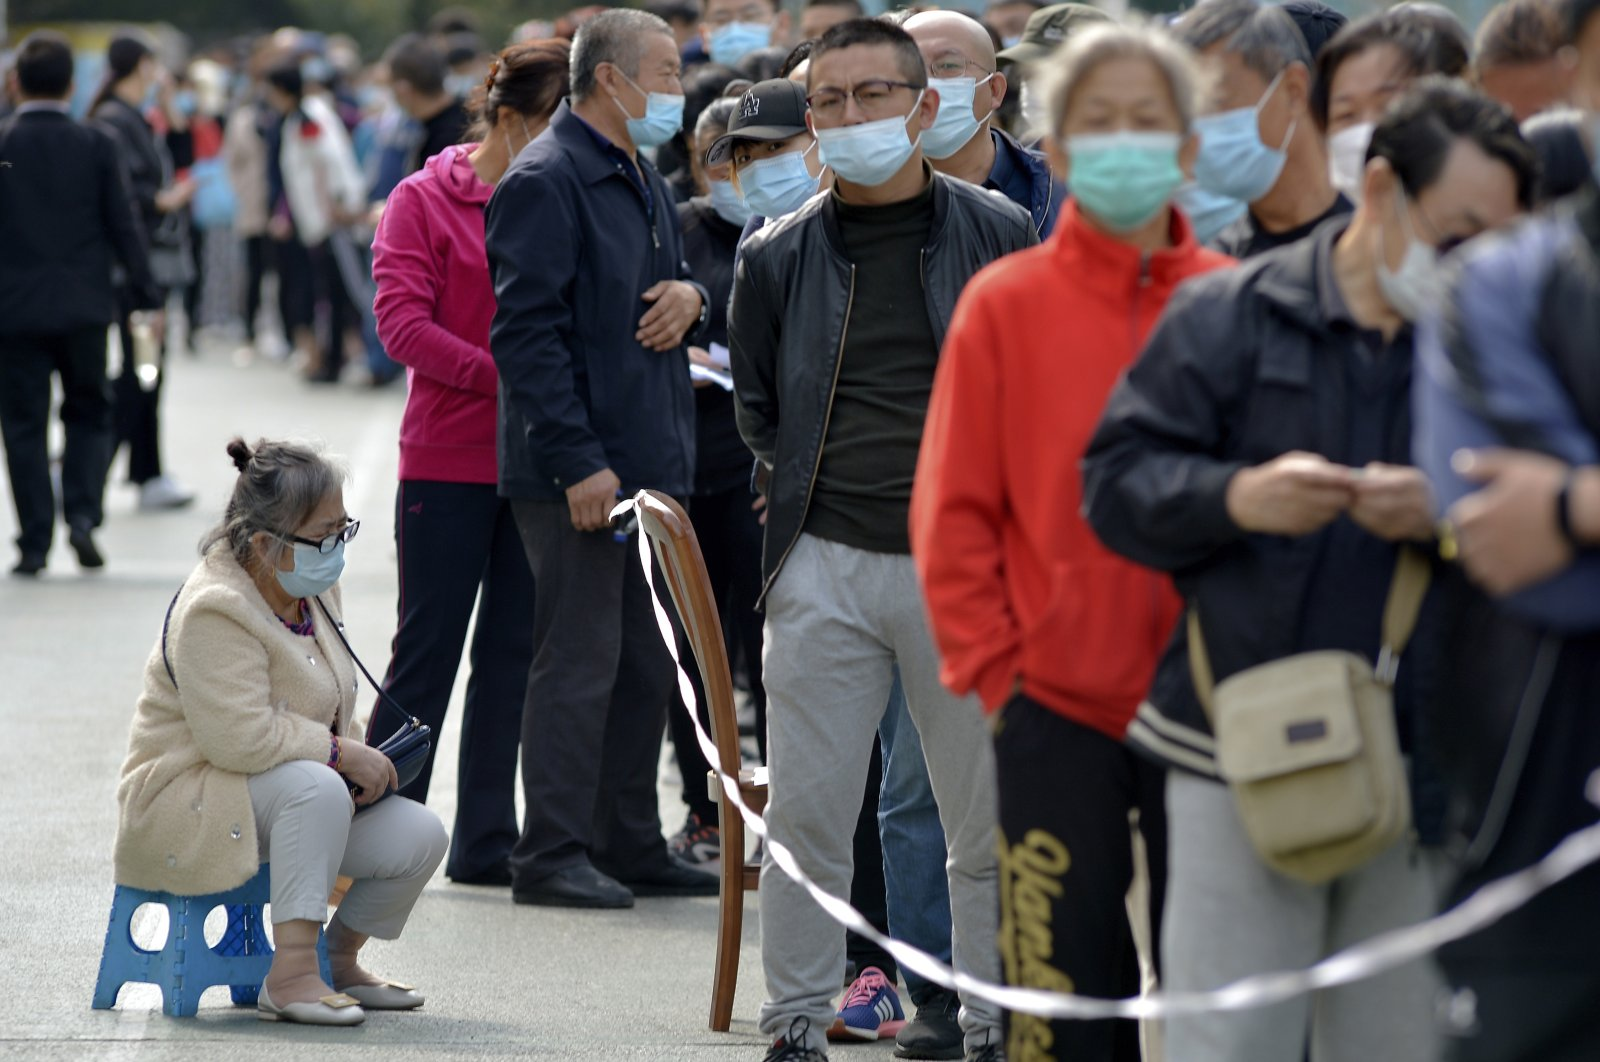 A woman wearing a mask to help curb the spread of the coronavirus sits on a stool as masked residents line up for COVID-19 tests near the residential area, Qingdao in east China's Shandong province, Oct. 12, 2020. (AP Photo)